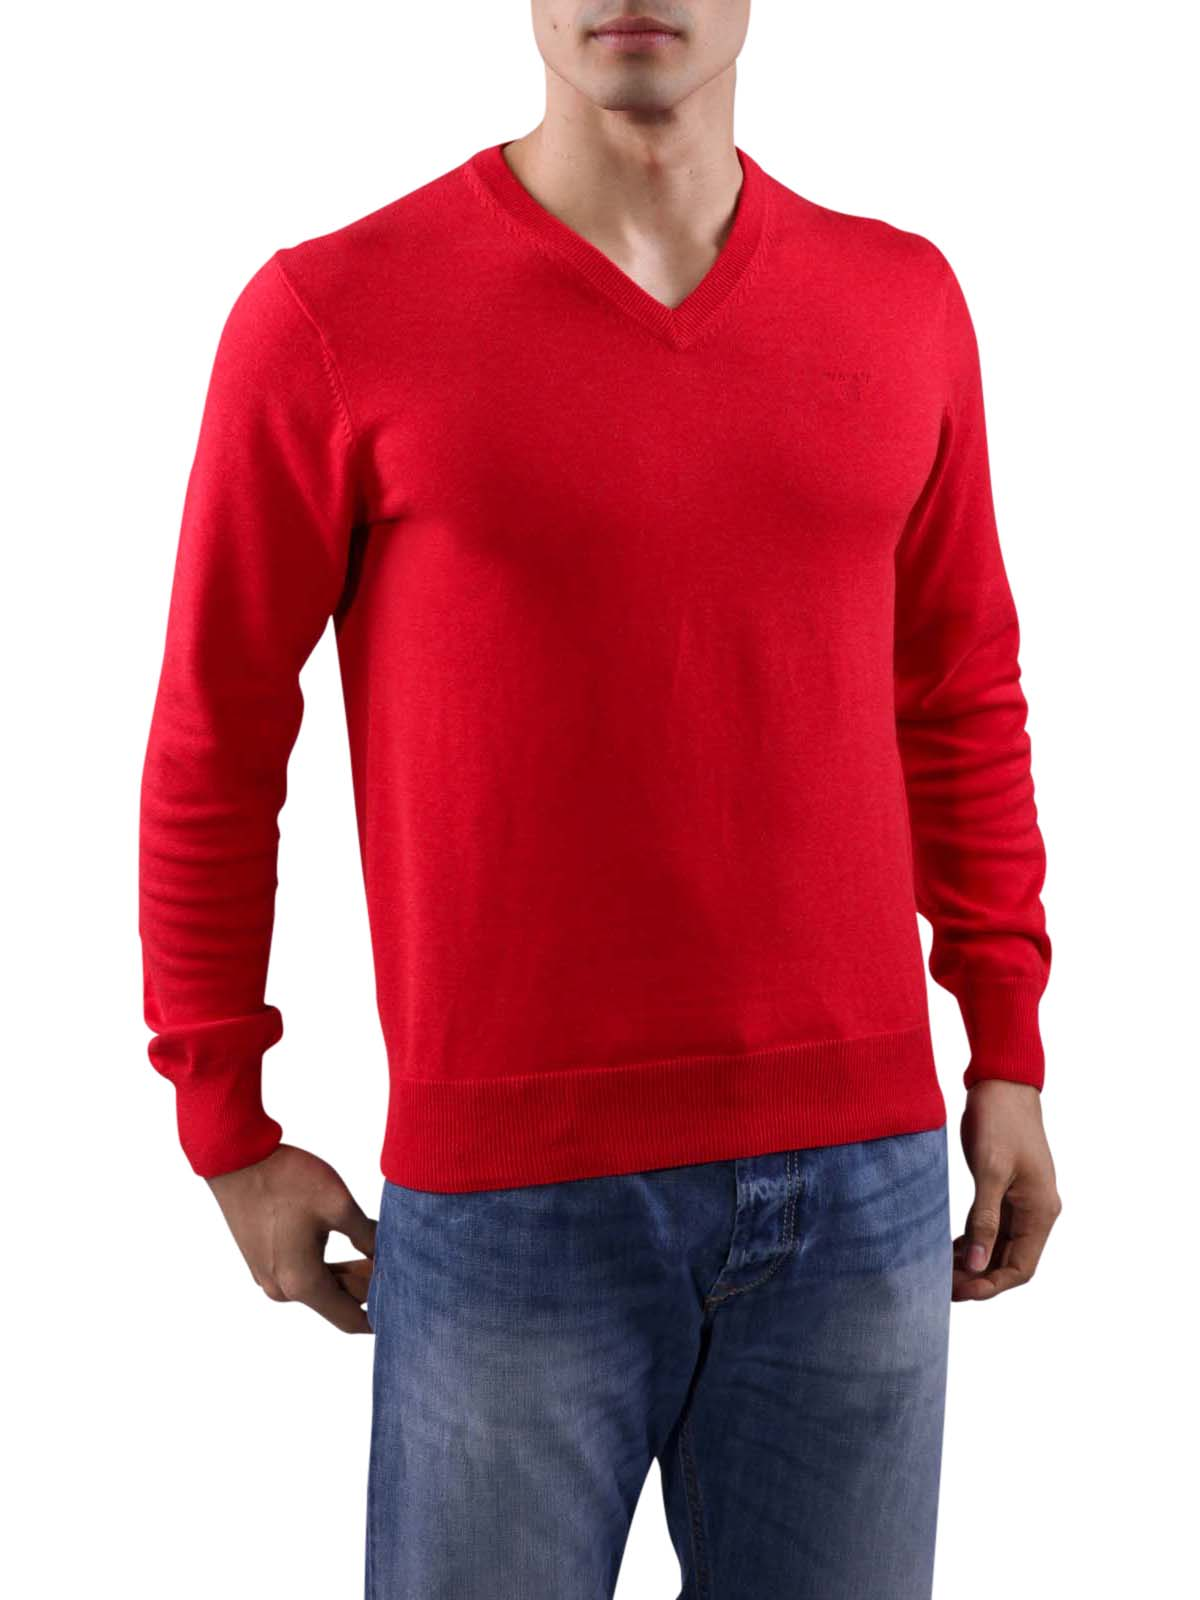 Gant Light Weight Cotton V Neck Bright Red Gant Herren Pullover